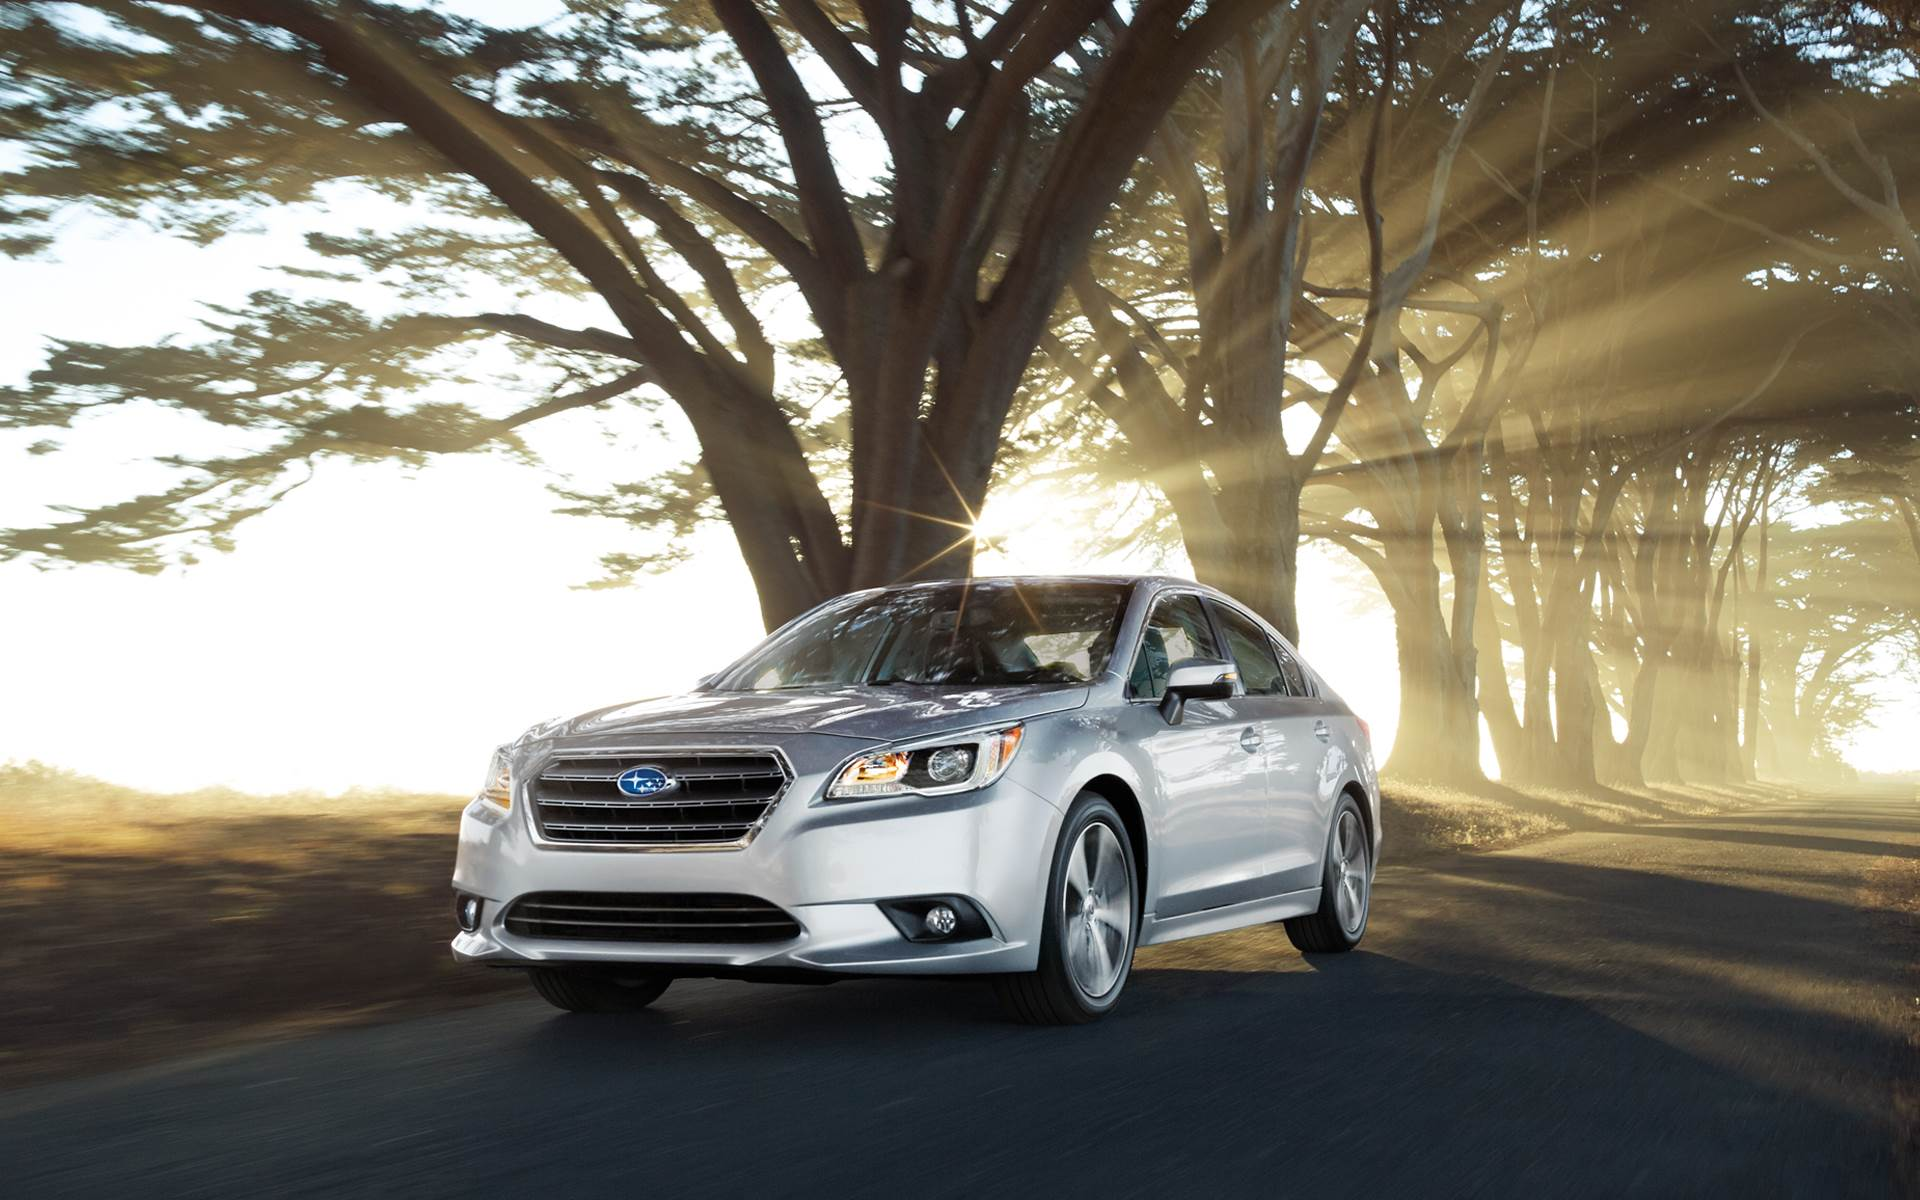 How many airbags in 2017 SUBARU LEGACY